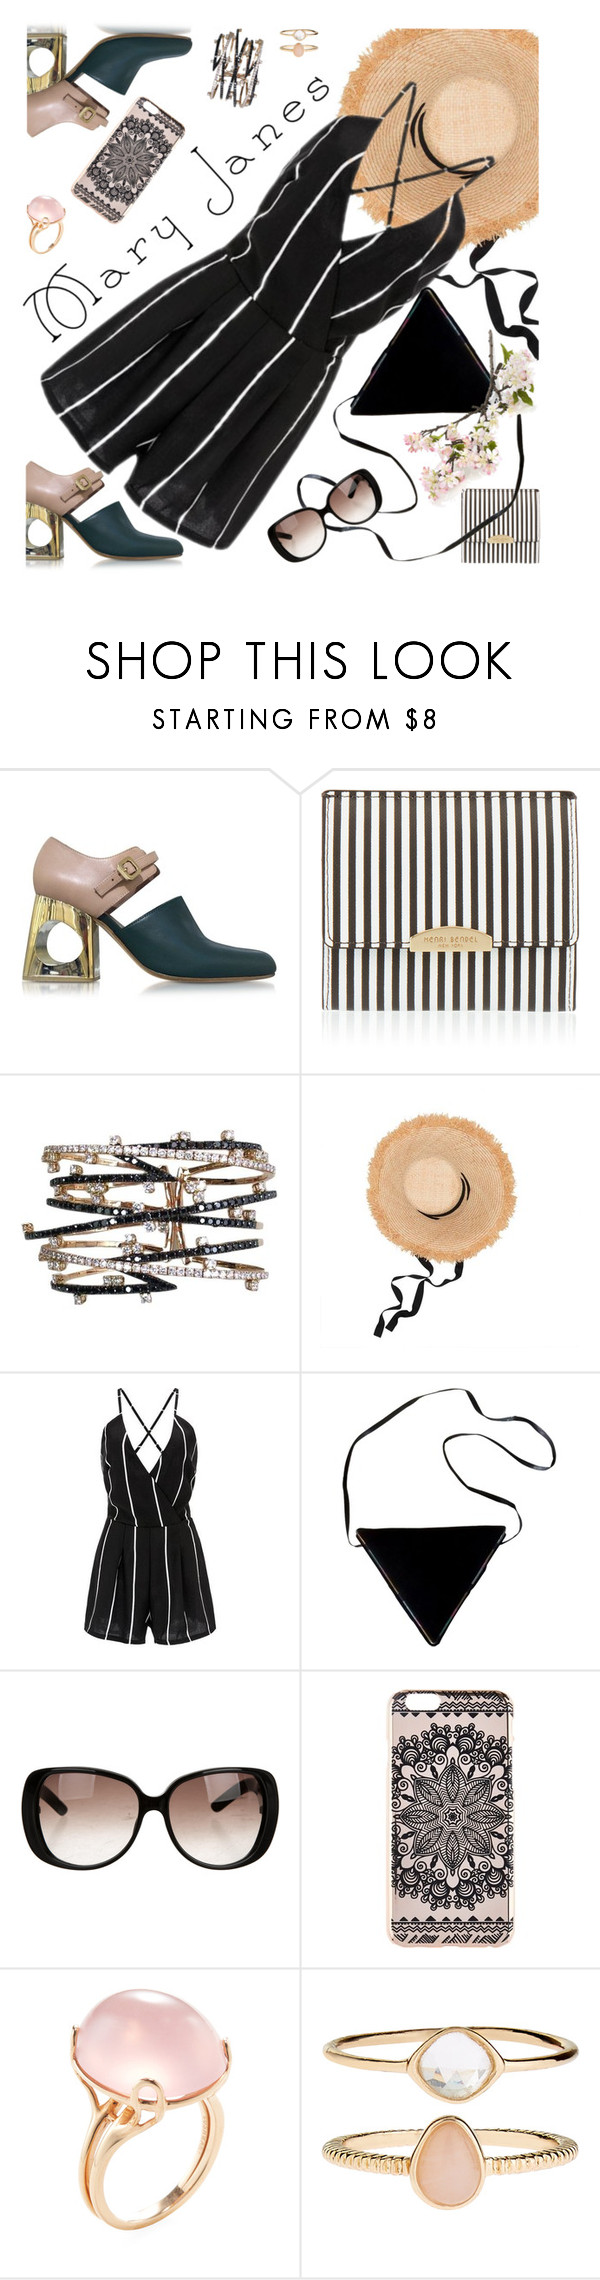 """Mary Janes"" by petalp ❤ liked on Polyvore featuring Marni, Henri Bendel, Lola, Casadei, Gucci, New Look, Goshwara, Accessorize, Crate and Barrel and ootd"